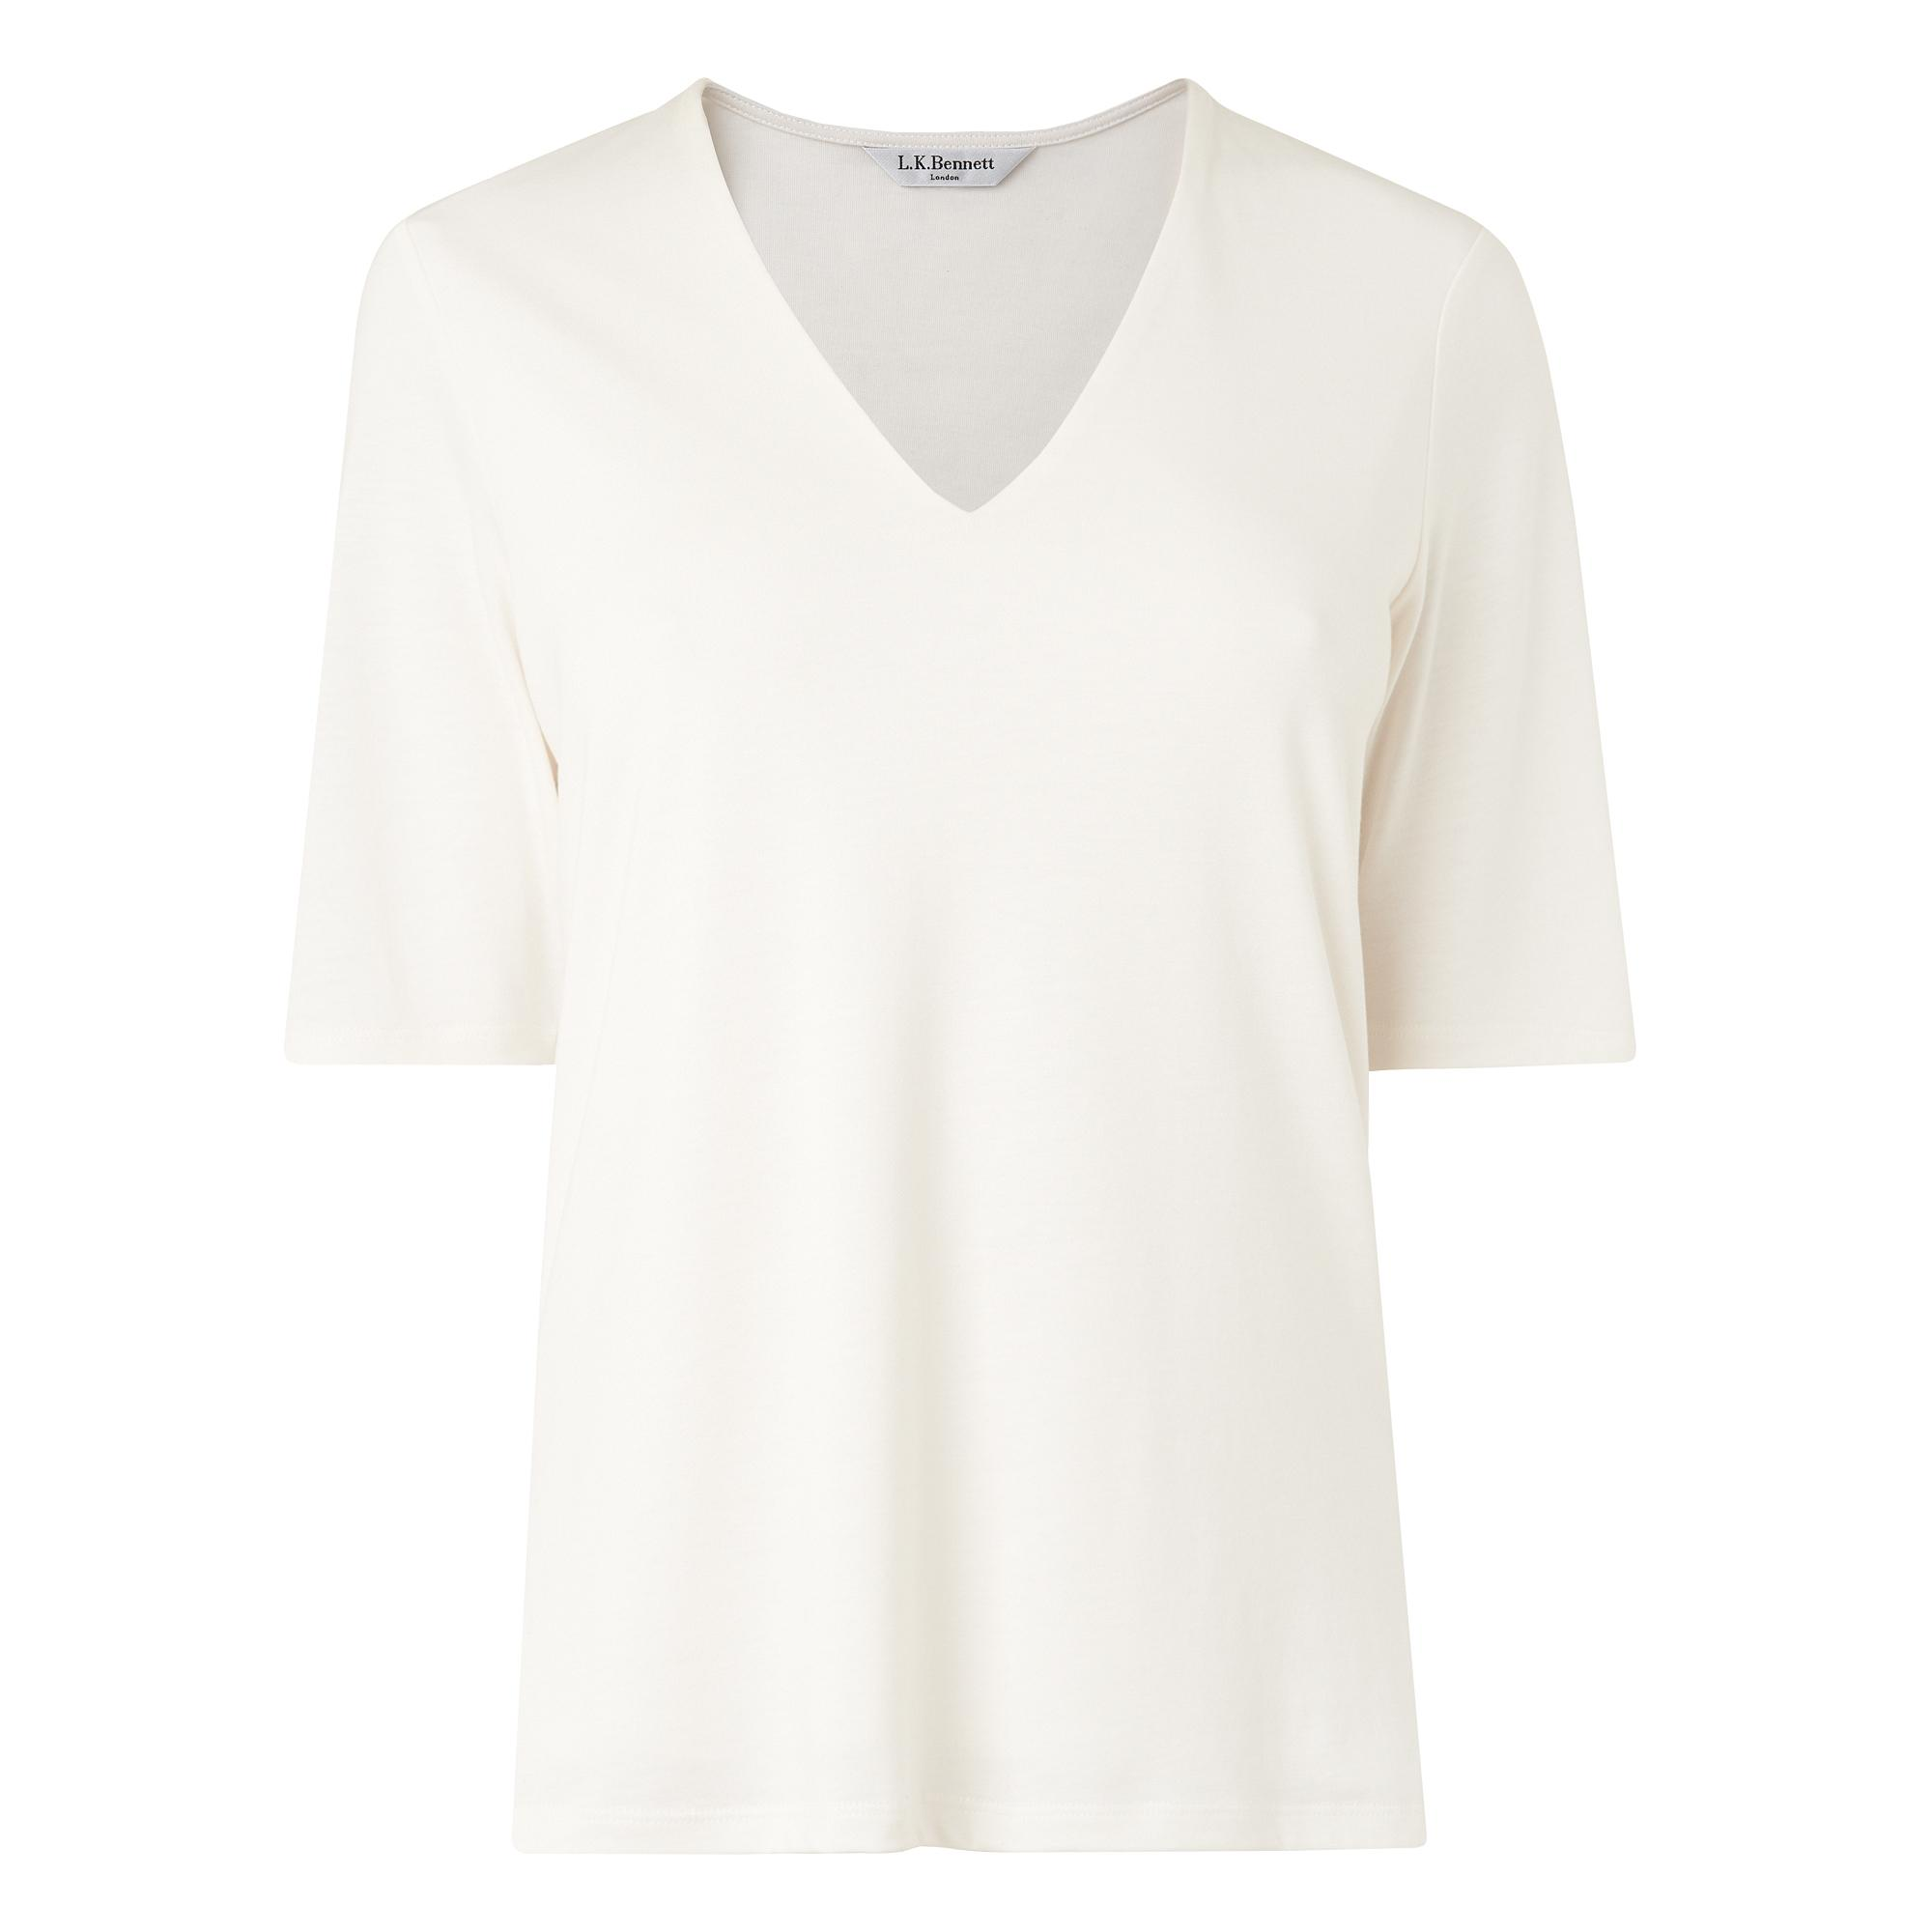 L.K.Bennett Orla V Neck Top